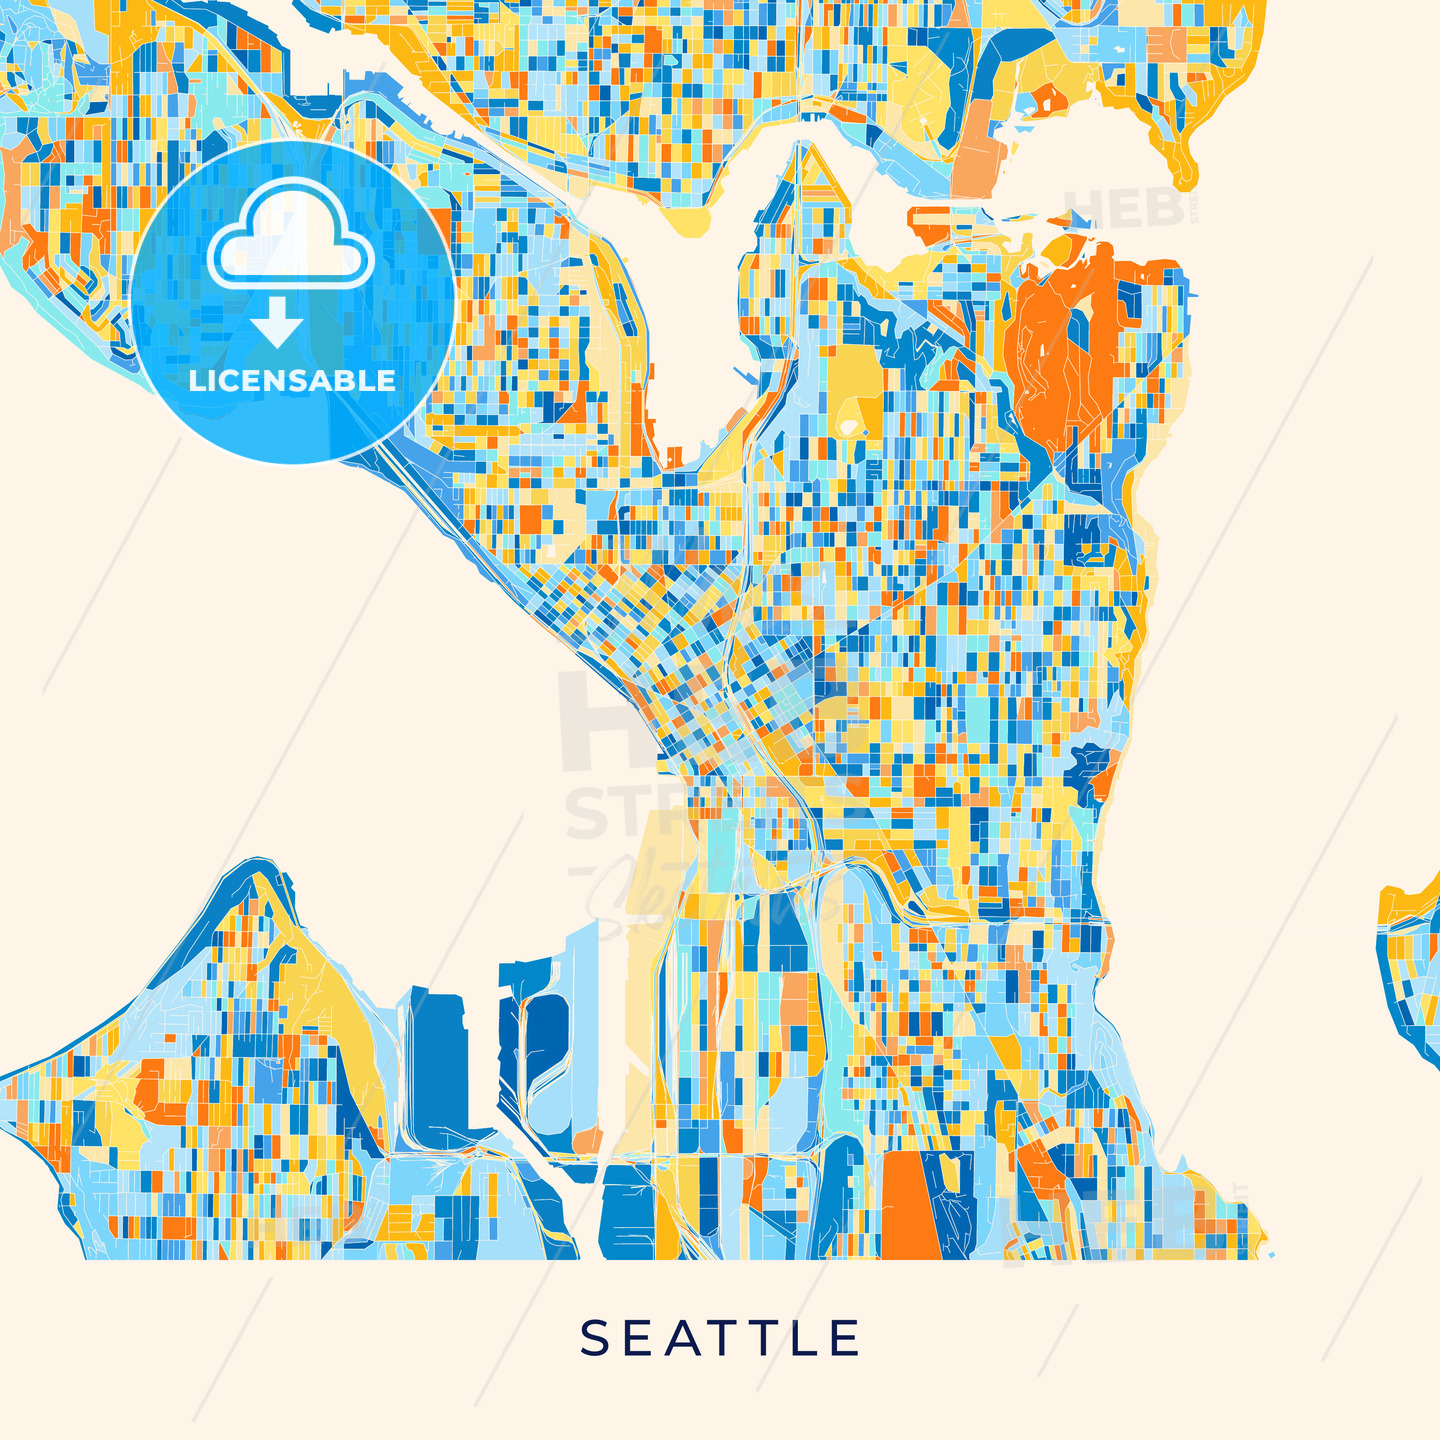 Seattle colorful map poster template on seattle flag map, seattle aerial map, seattle hotel map, seattle map google, seattle taiwan map, seattle on the map, seattle pride parade map, seattle central college campus map, seattle canada map, seattle location on map, seattle road map, seattle earthquake fault line map, university district seattle map, seattle street map, seattle location in usa, seattle world map, seattle washington, seattle region map, seattle tx map, seattle va map,